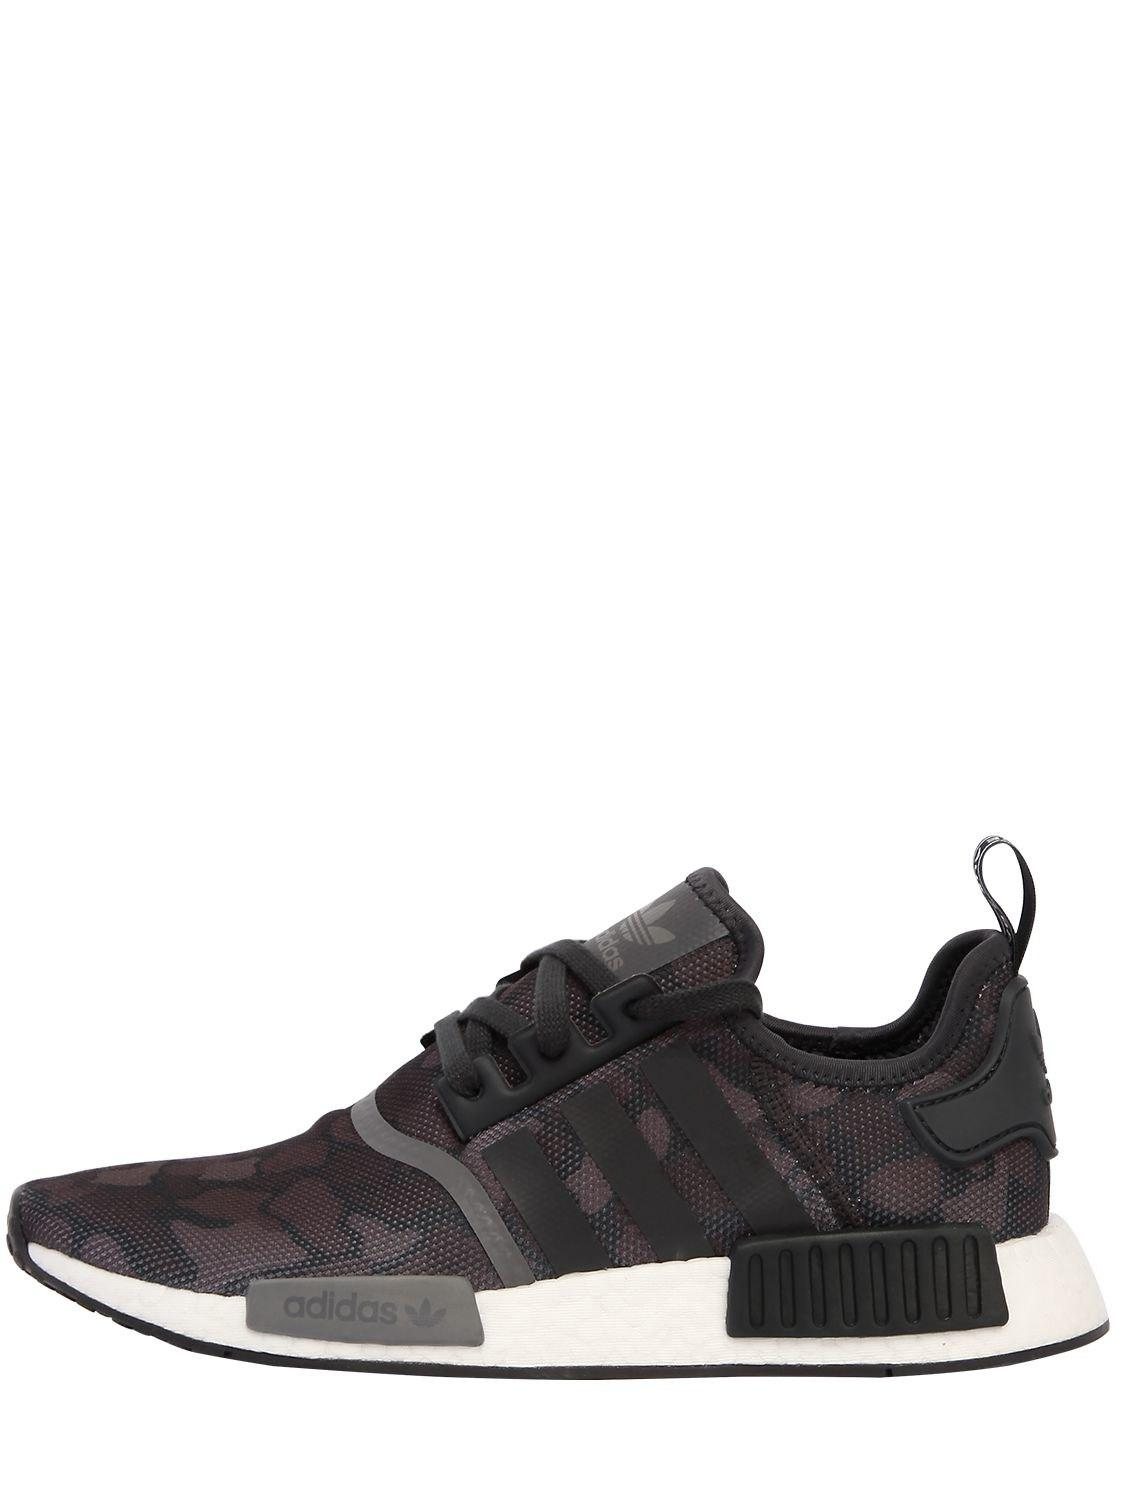 98f724443789e4 Lyst - adidas Originals Nmd R1 Sneakers in Black for Men